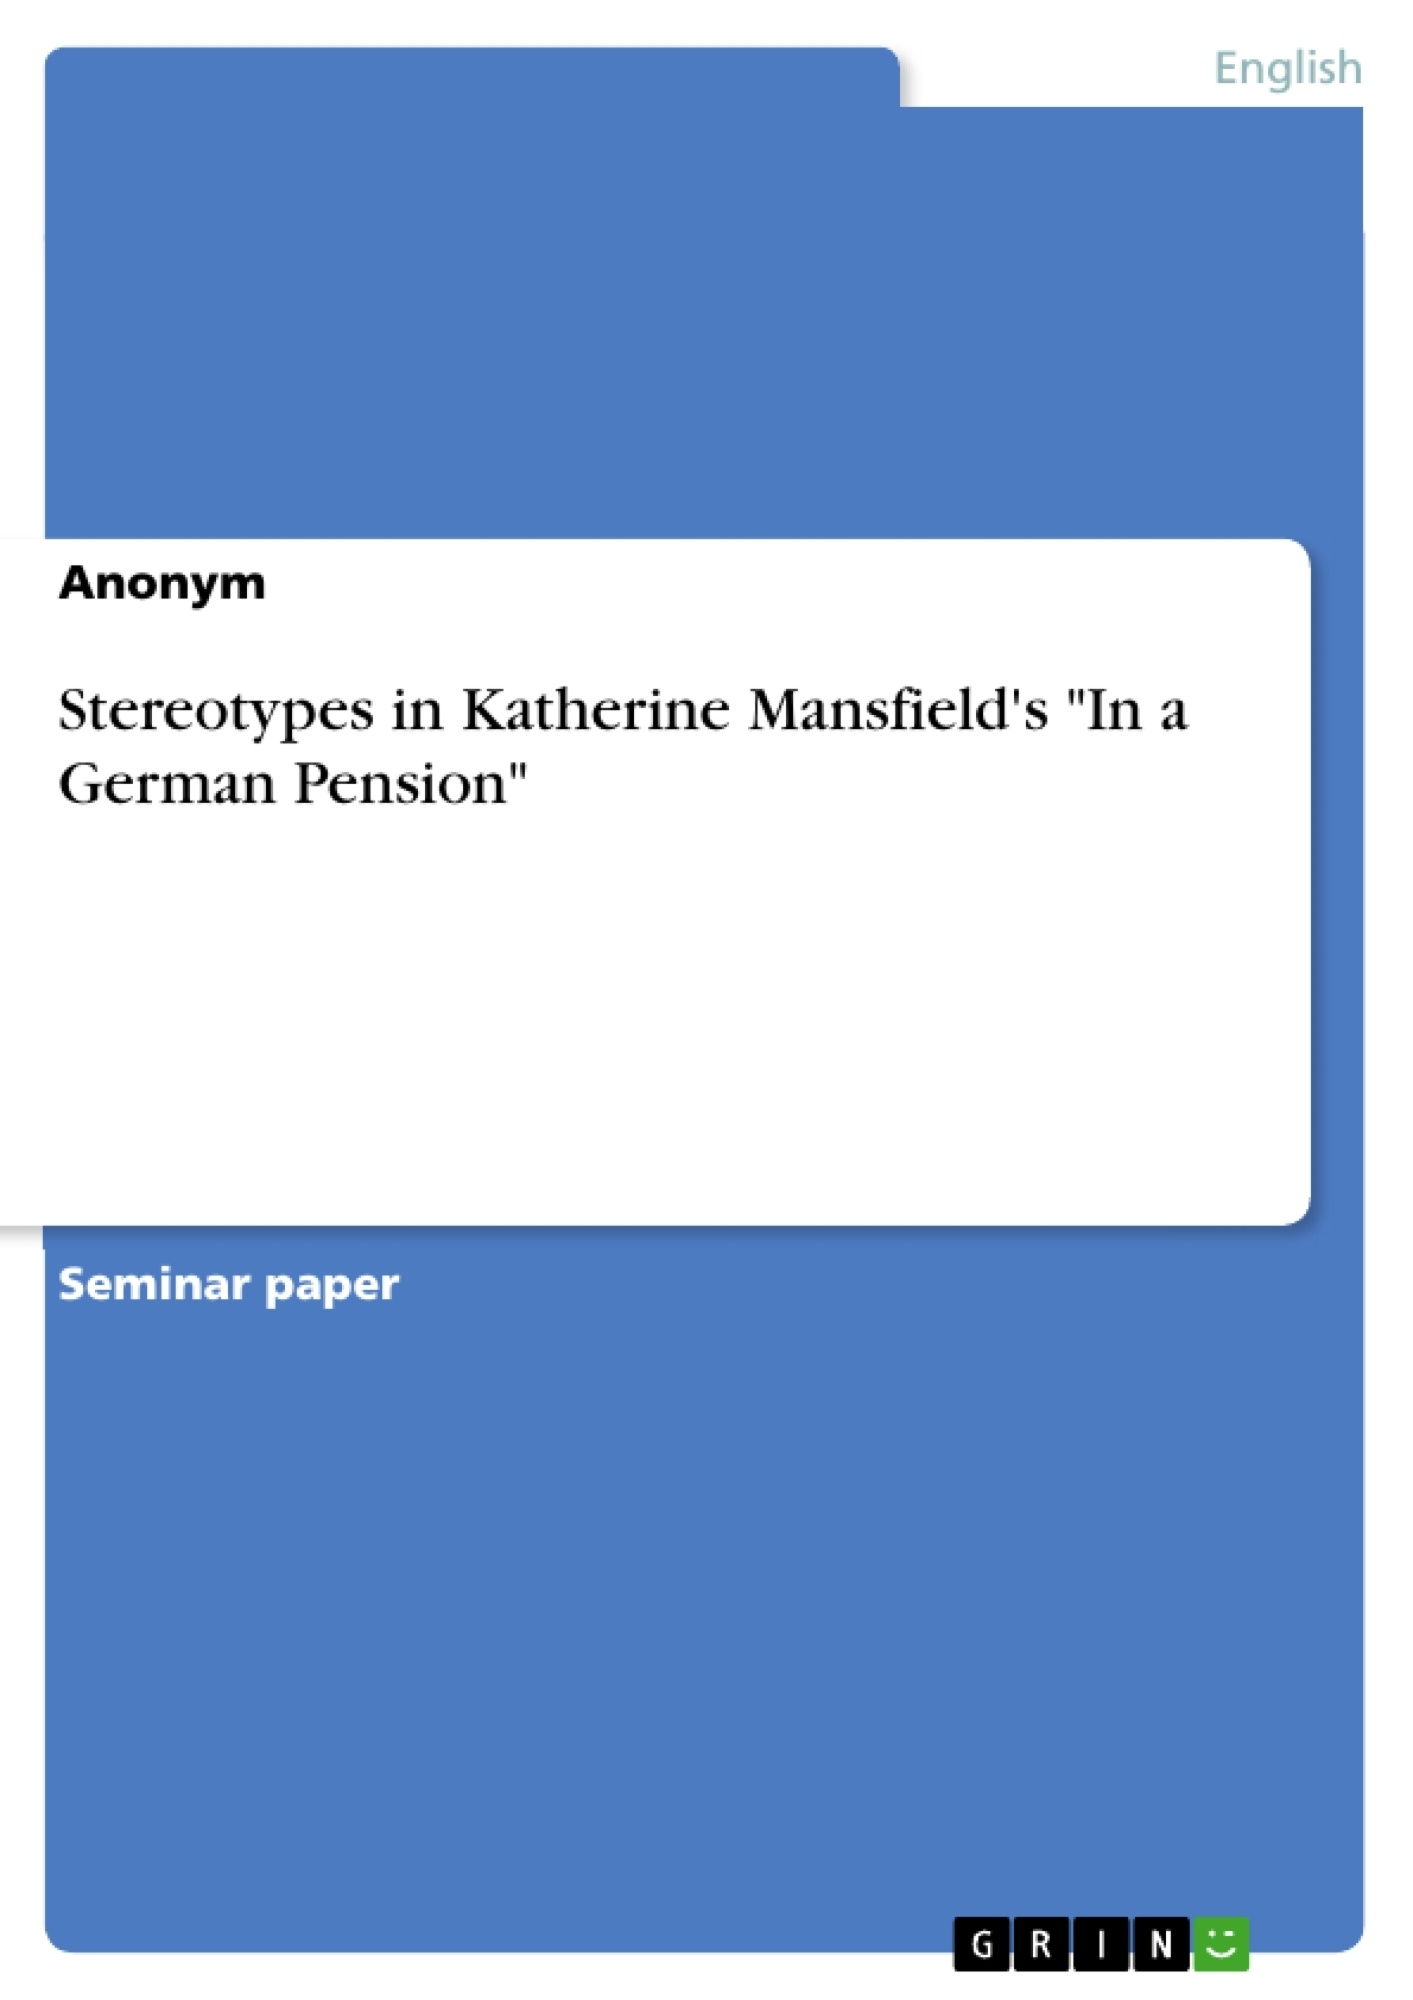 """Title: Stereotypes in Katherine Mansfield's """"In a German Pension"""""""